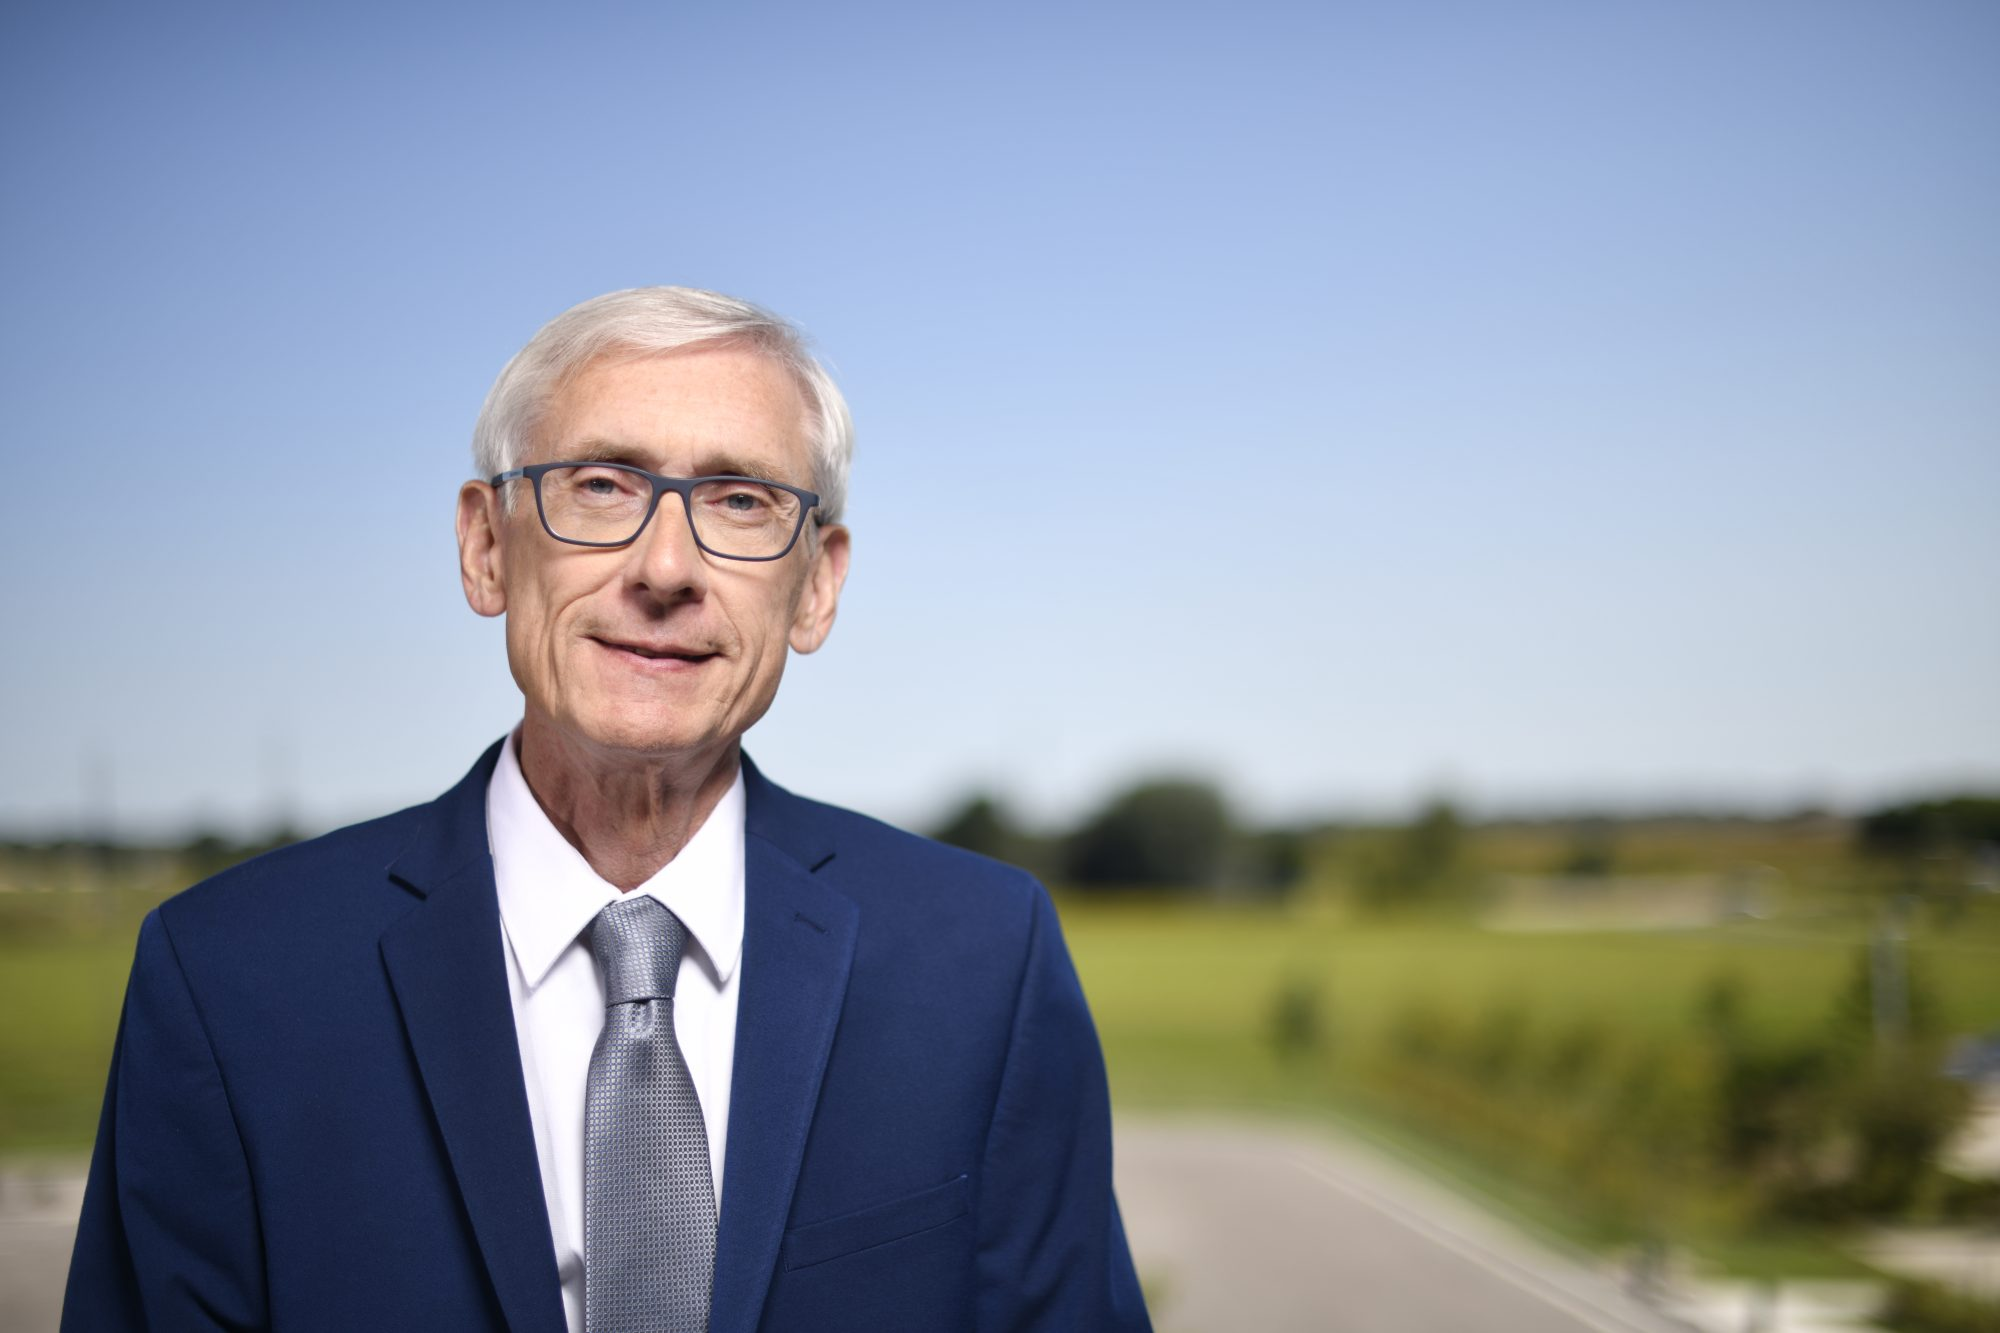 Gov. Evers Announces More Than 60 New Assistant Attorney Positions throughout State